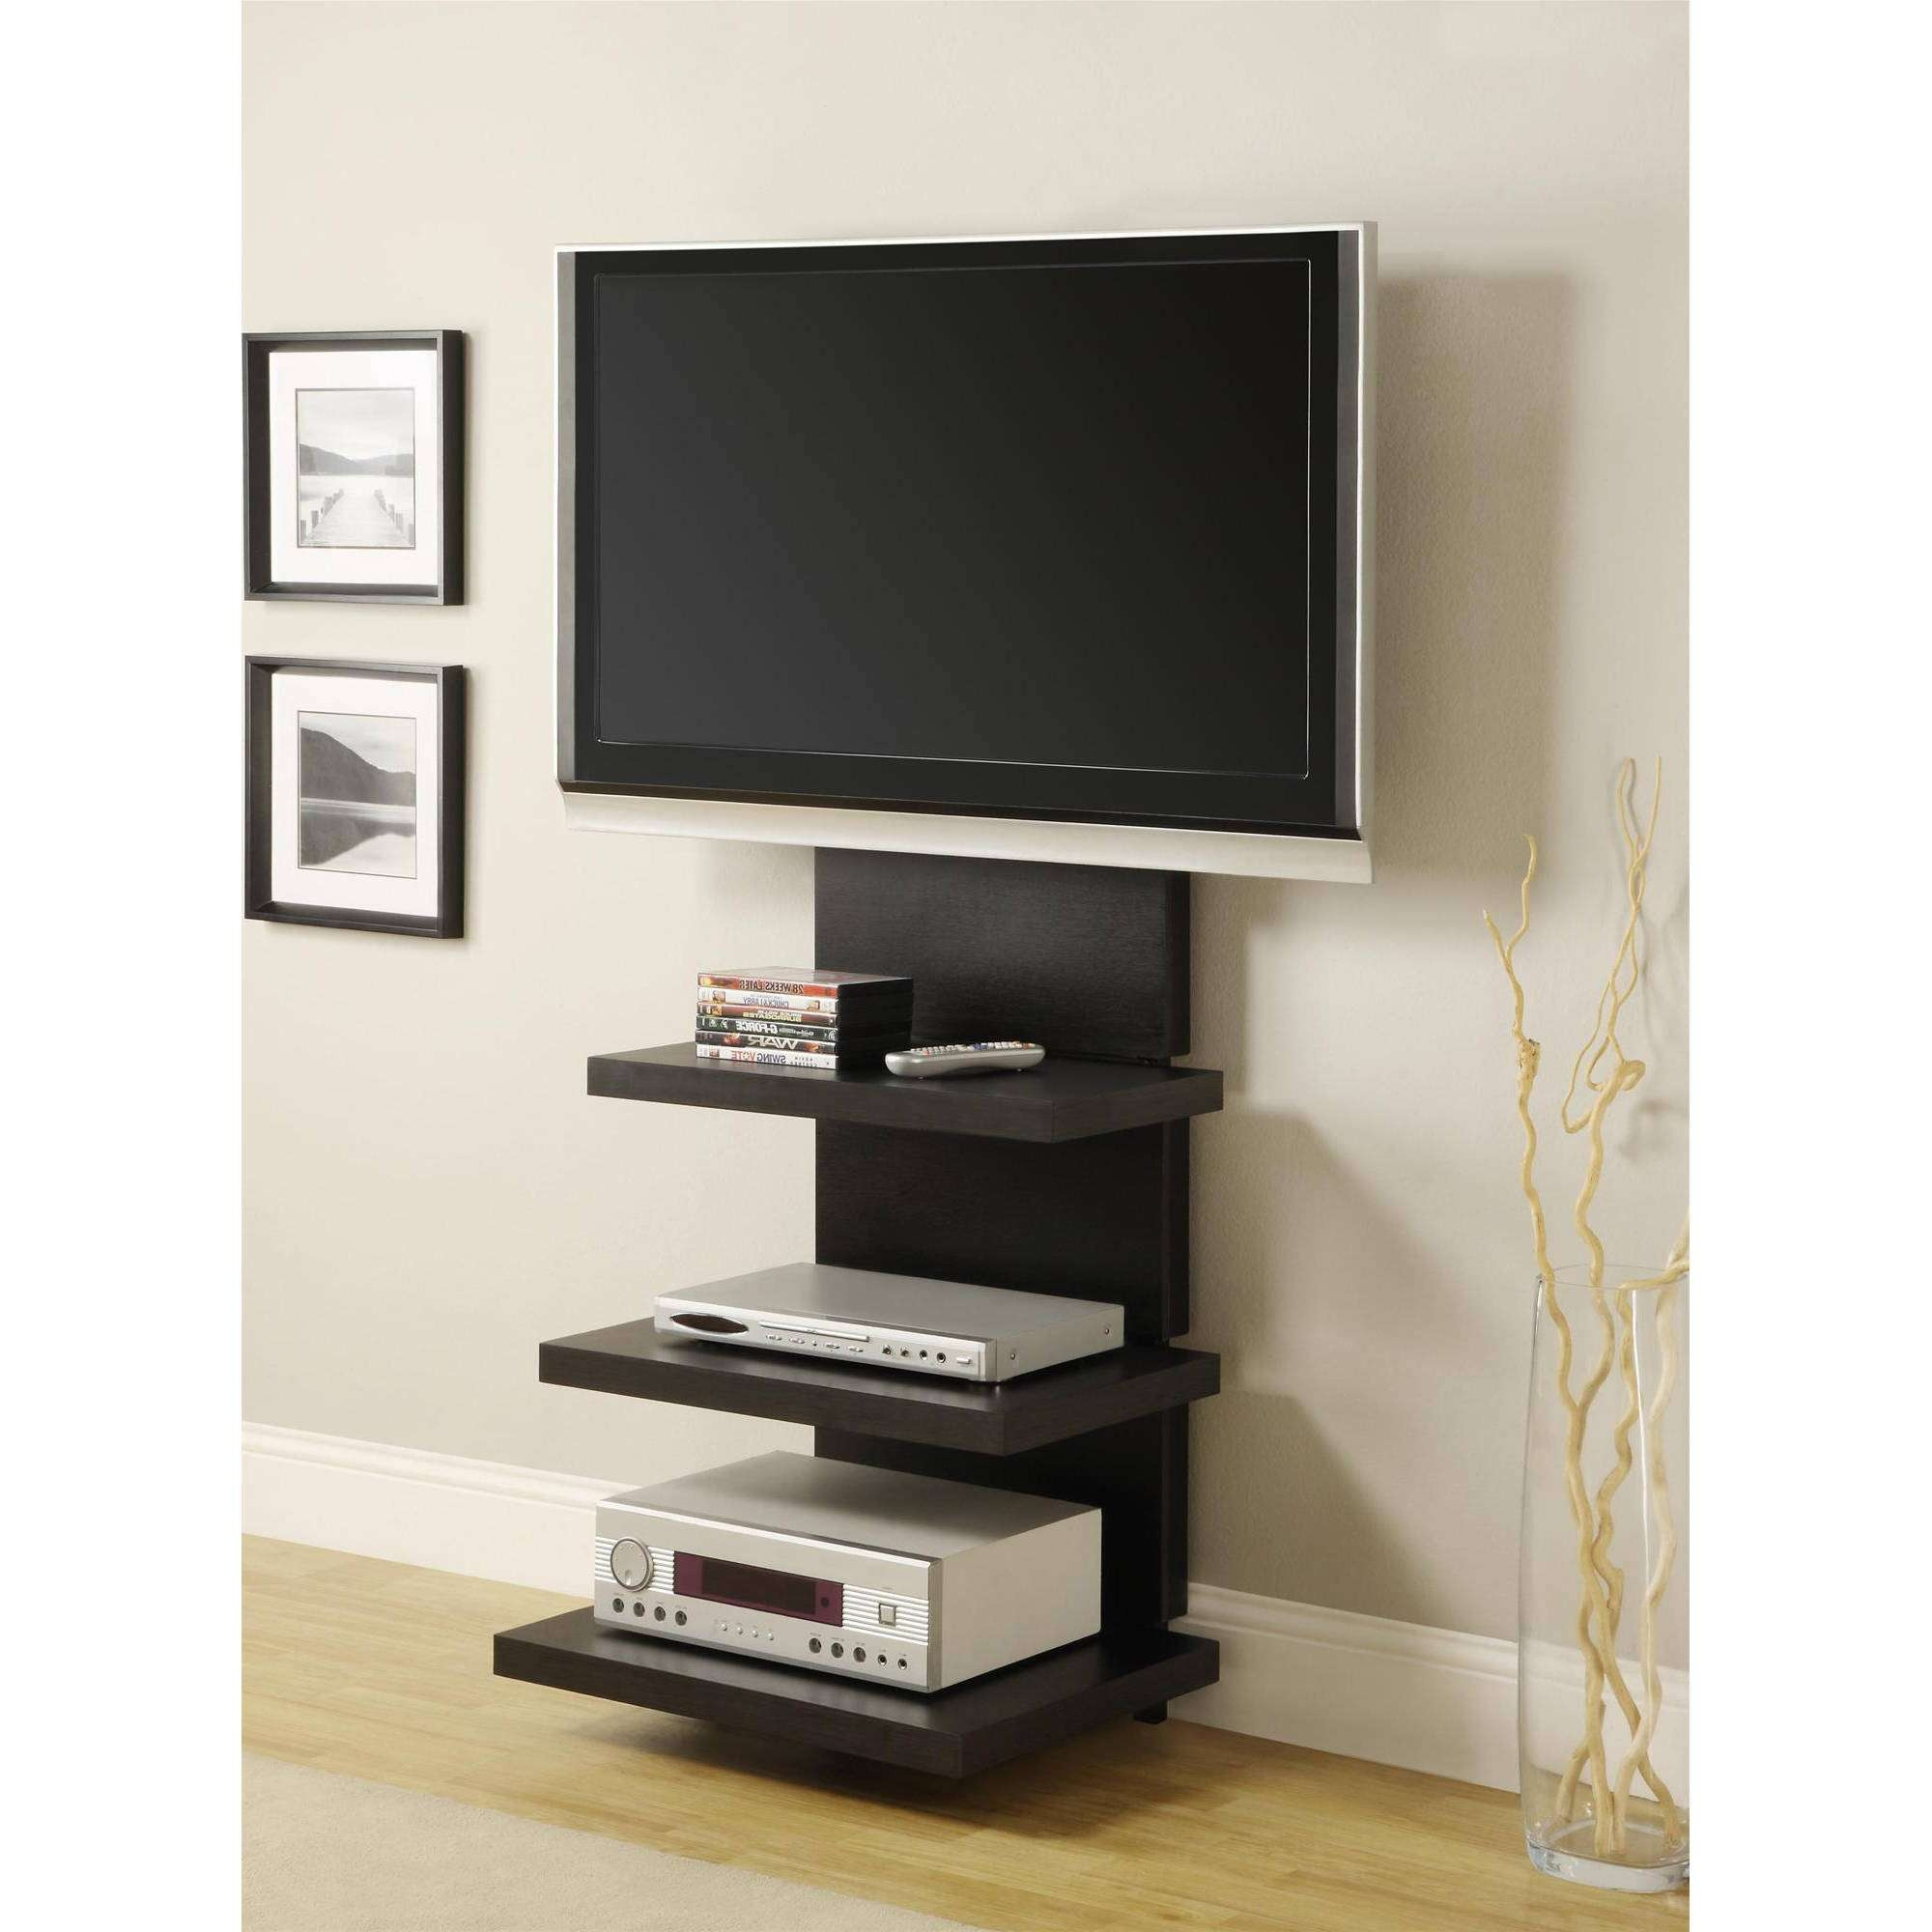 Ameriwood Home Elevation Altramount Tv Stand For Tvs Up To 60 Throughout Elevated Tv Stands (View 2 of 15)